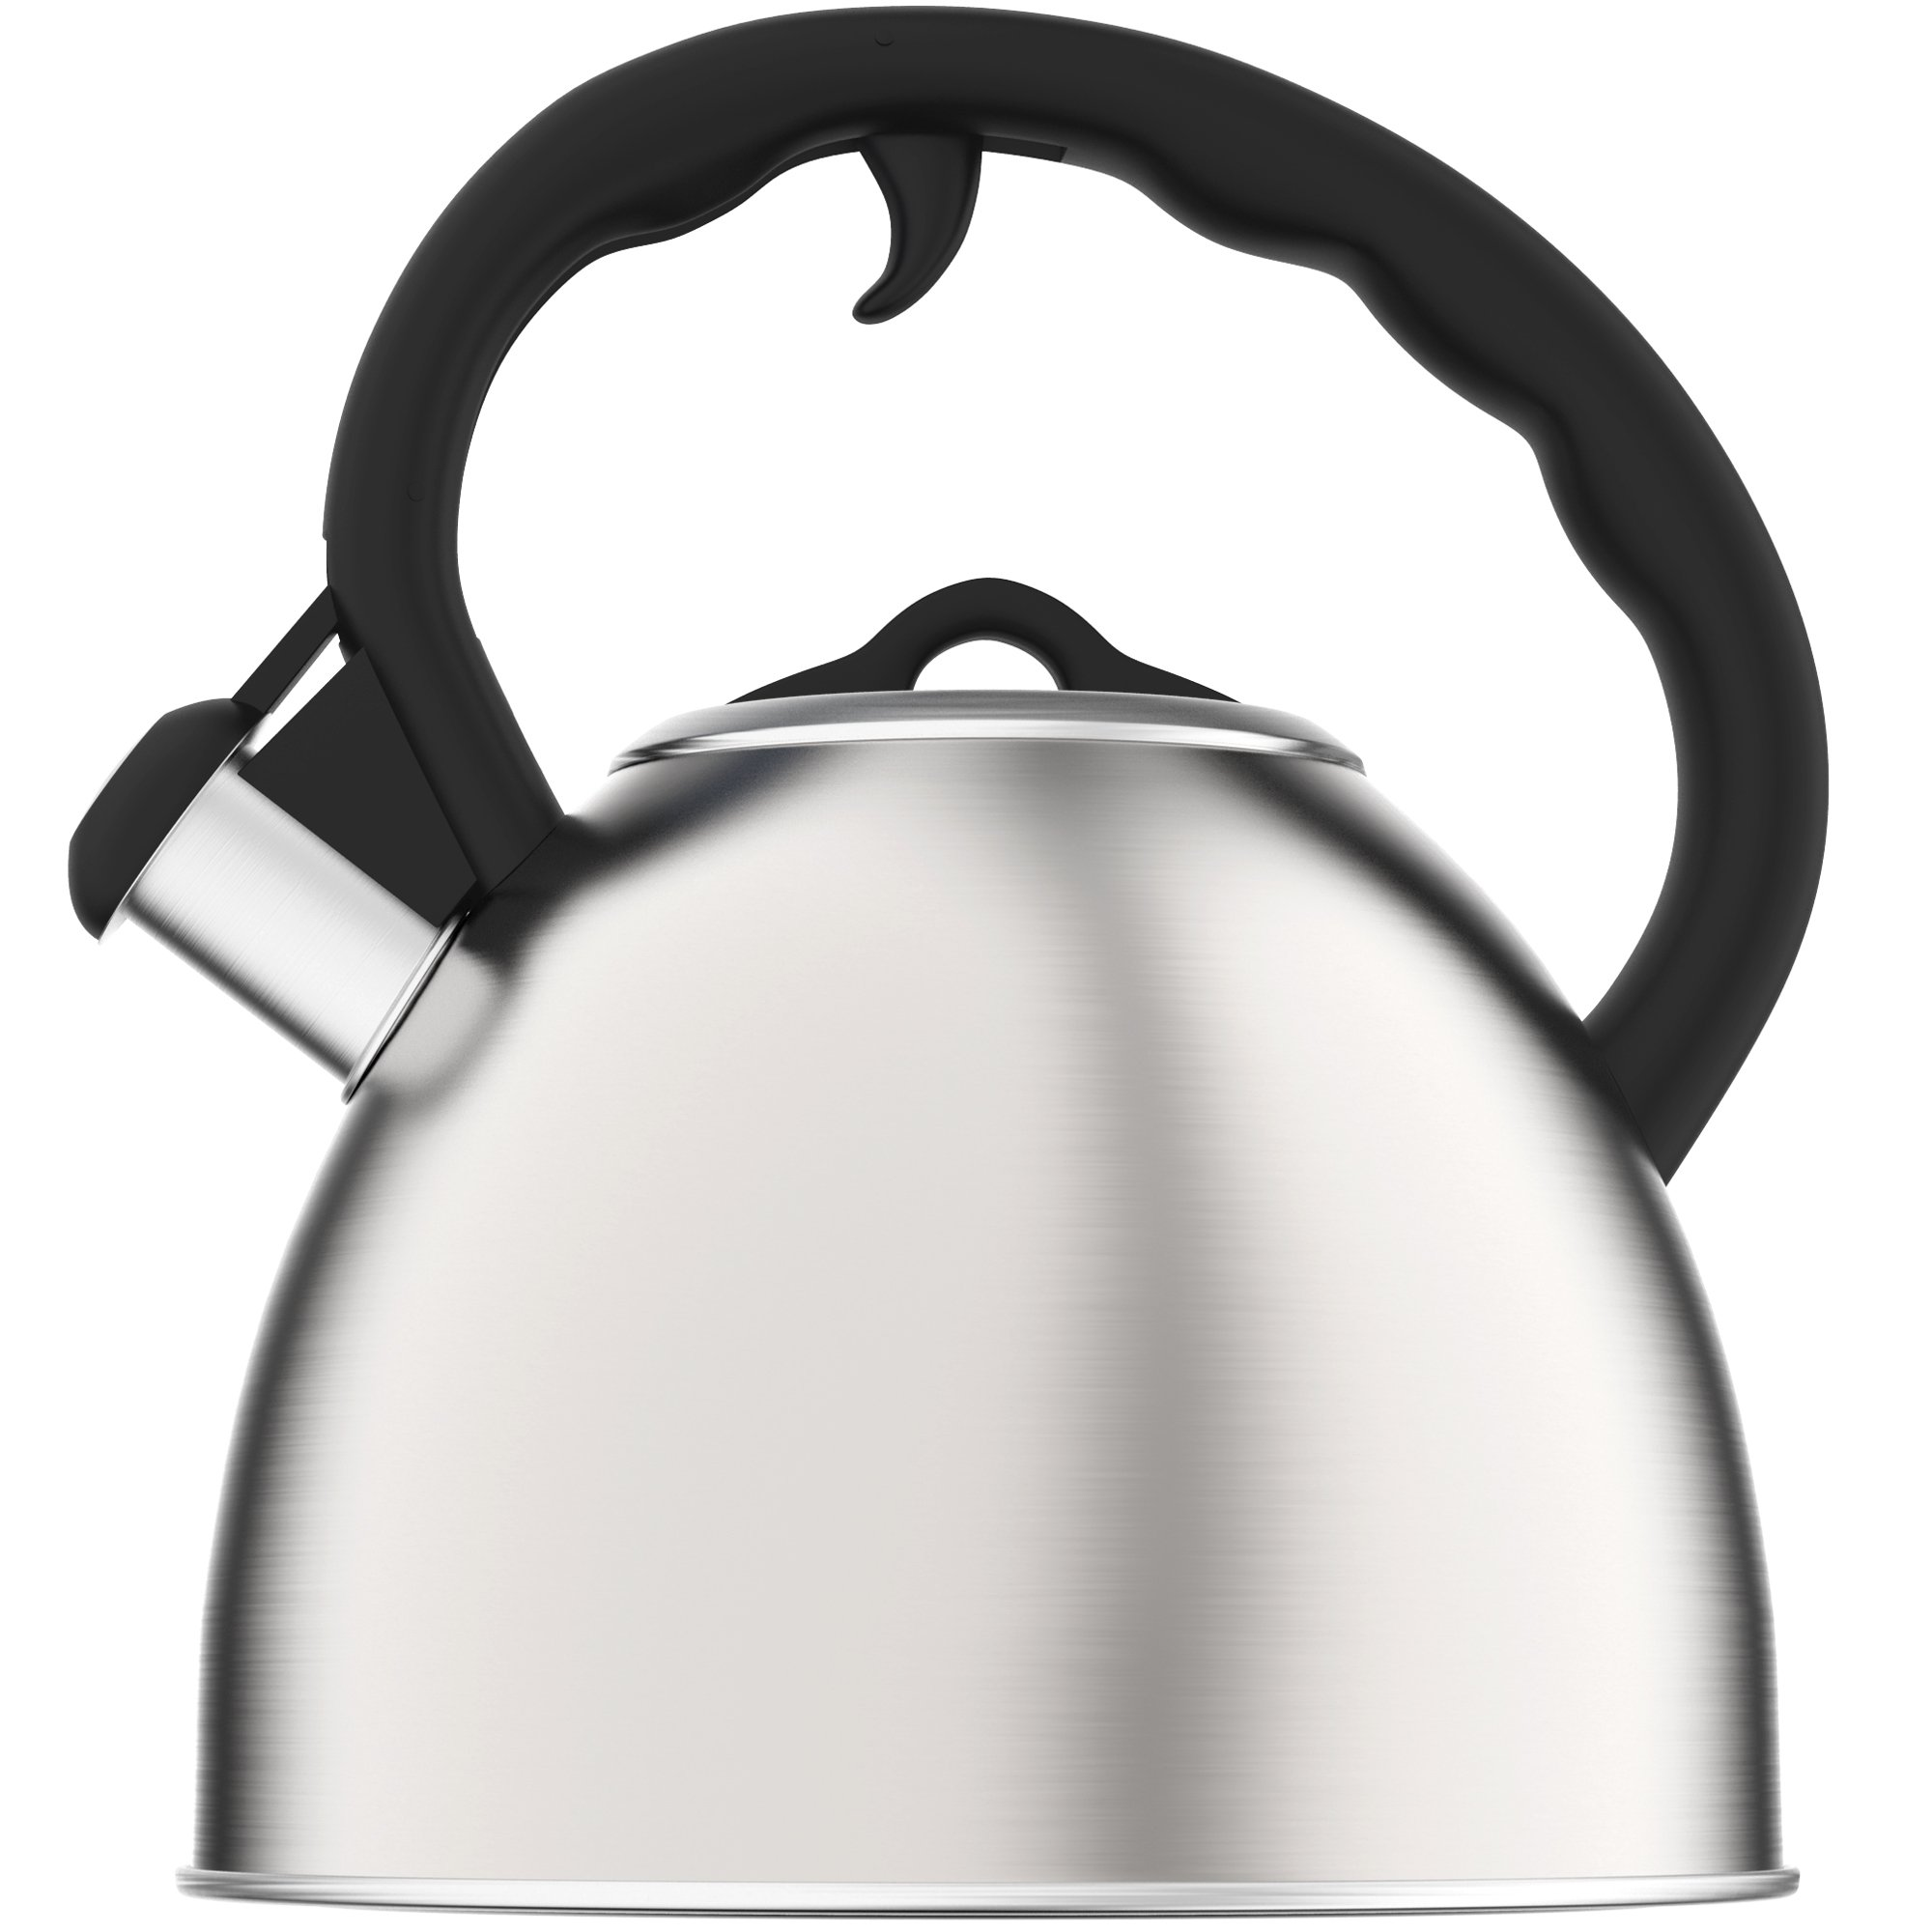 vremi whistling tea kettle   quart stainless steel modern dome  - product details